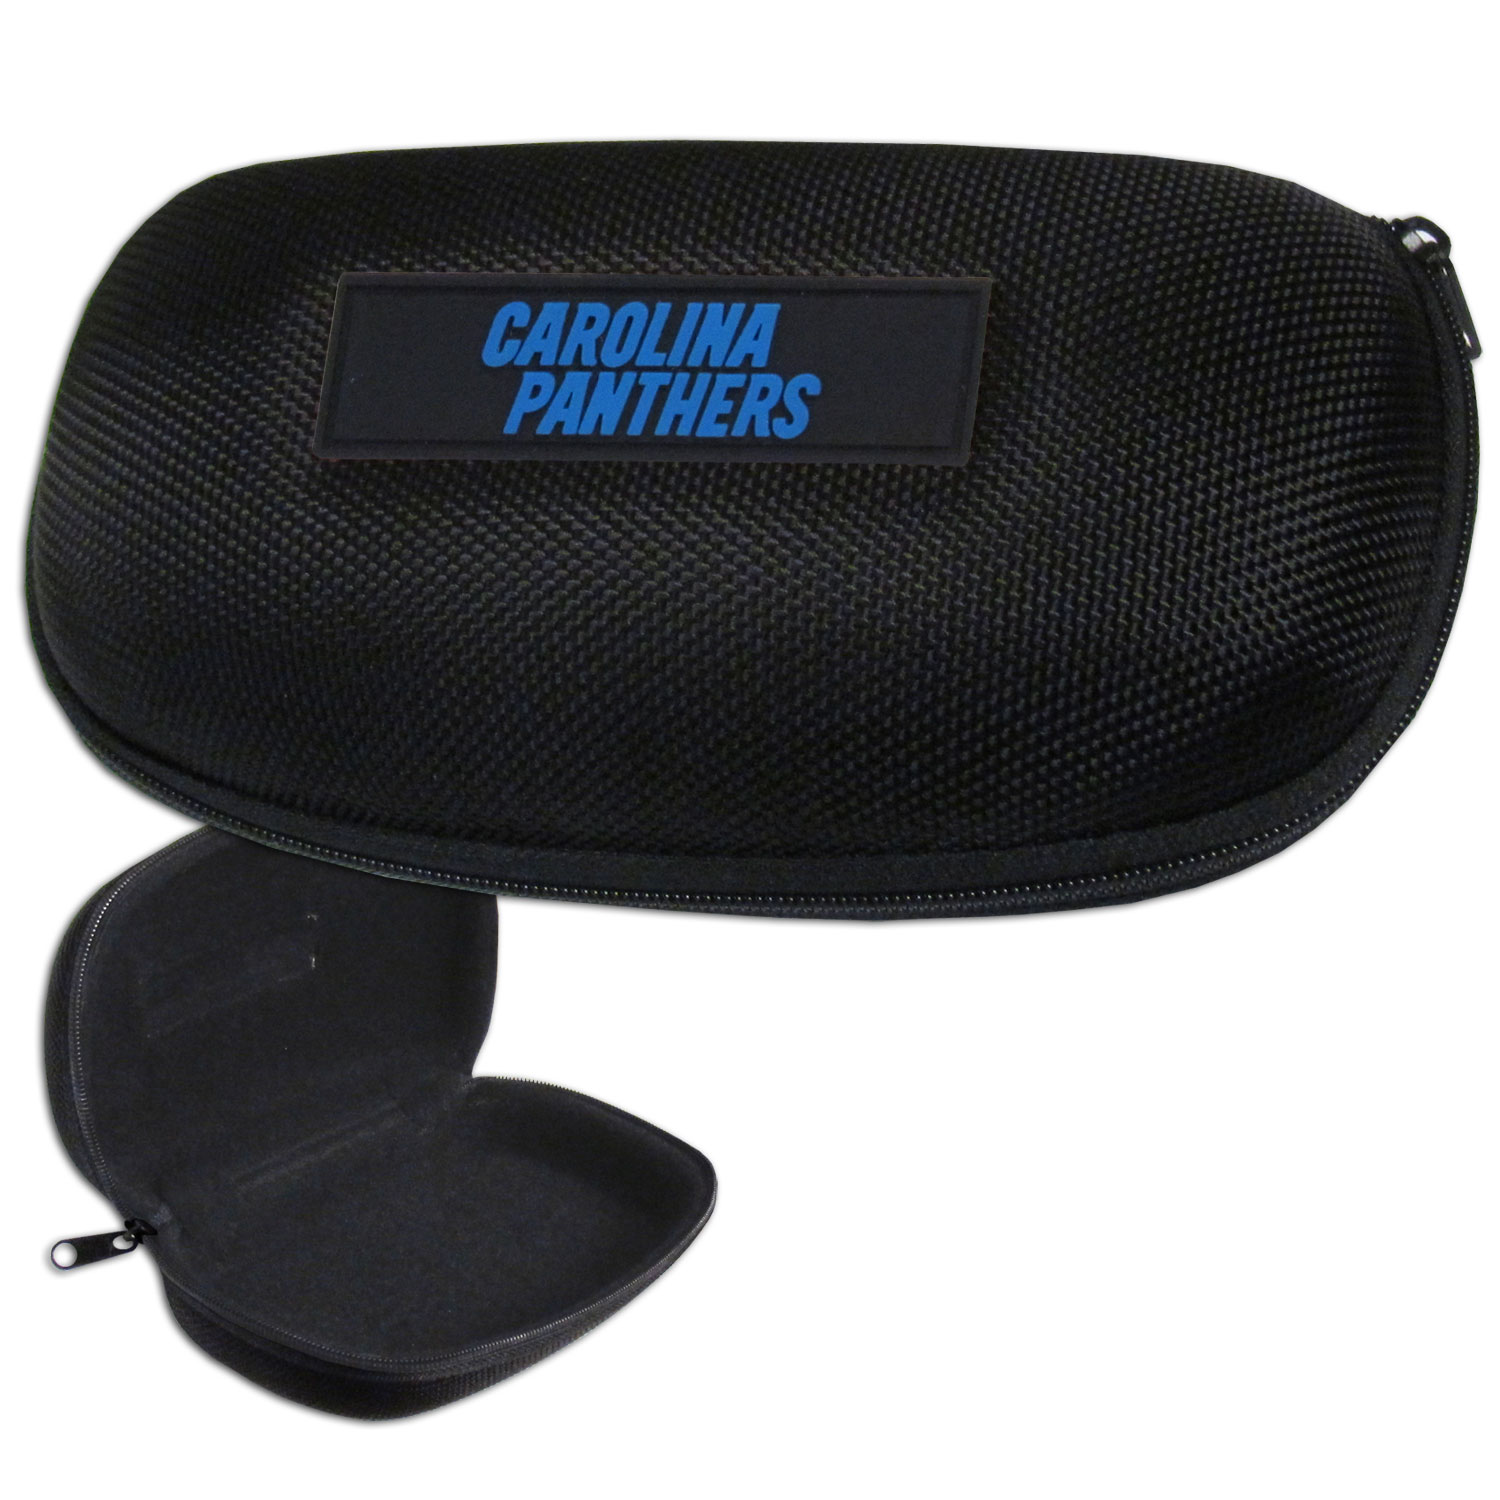 Carolina Panthers Zippered Sunglass Case - Carolina Panthers NFL hard sunglass cases are a great way to protect your Carolina Panthers sunglasses. The hard molded shell protects the glasses from being crushed or damaged from dropping. The zippered closure prevents accidental opening and the soft lining protects the lenses from scratches. Officially licensed NFL product Licensee: Siskiyou Buckle Thank you for visiting CrazedOutSports.com